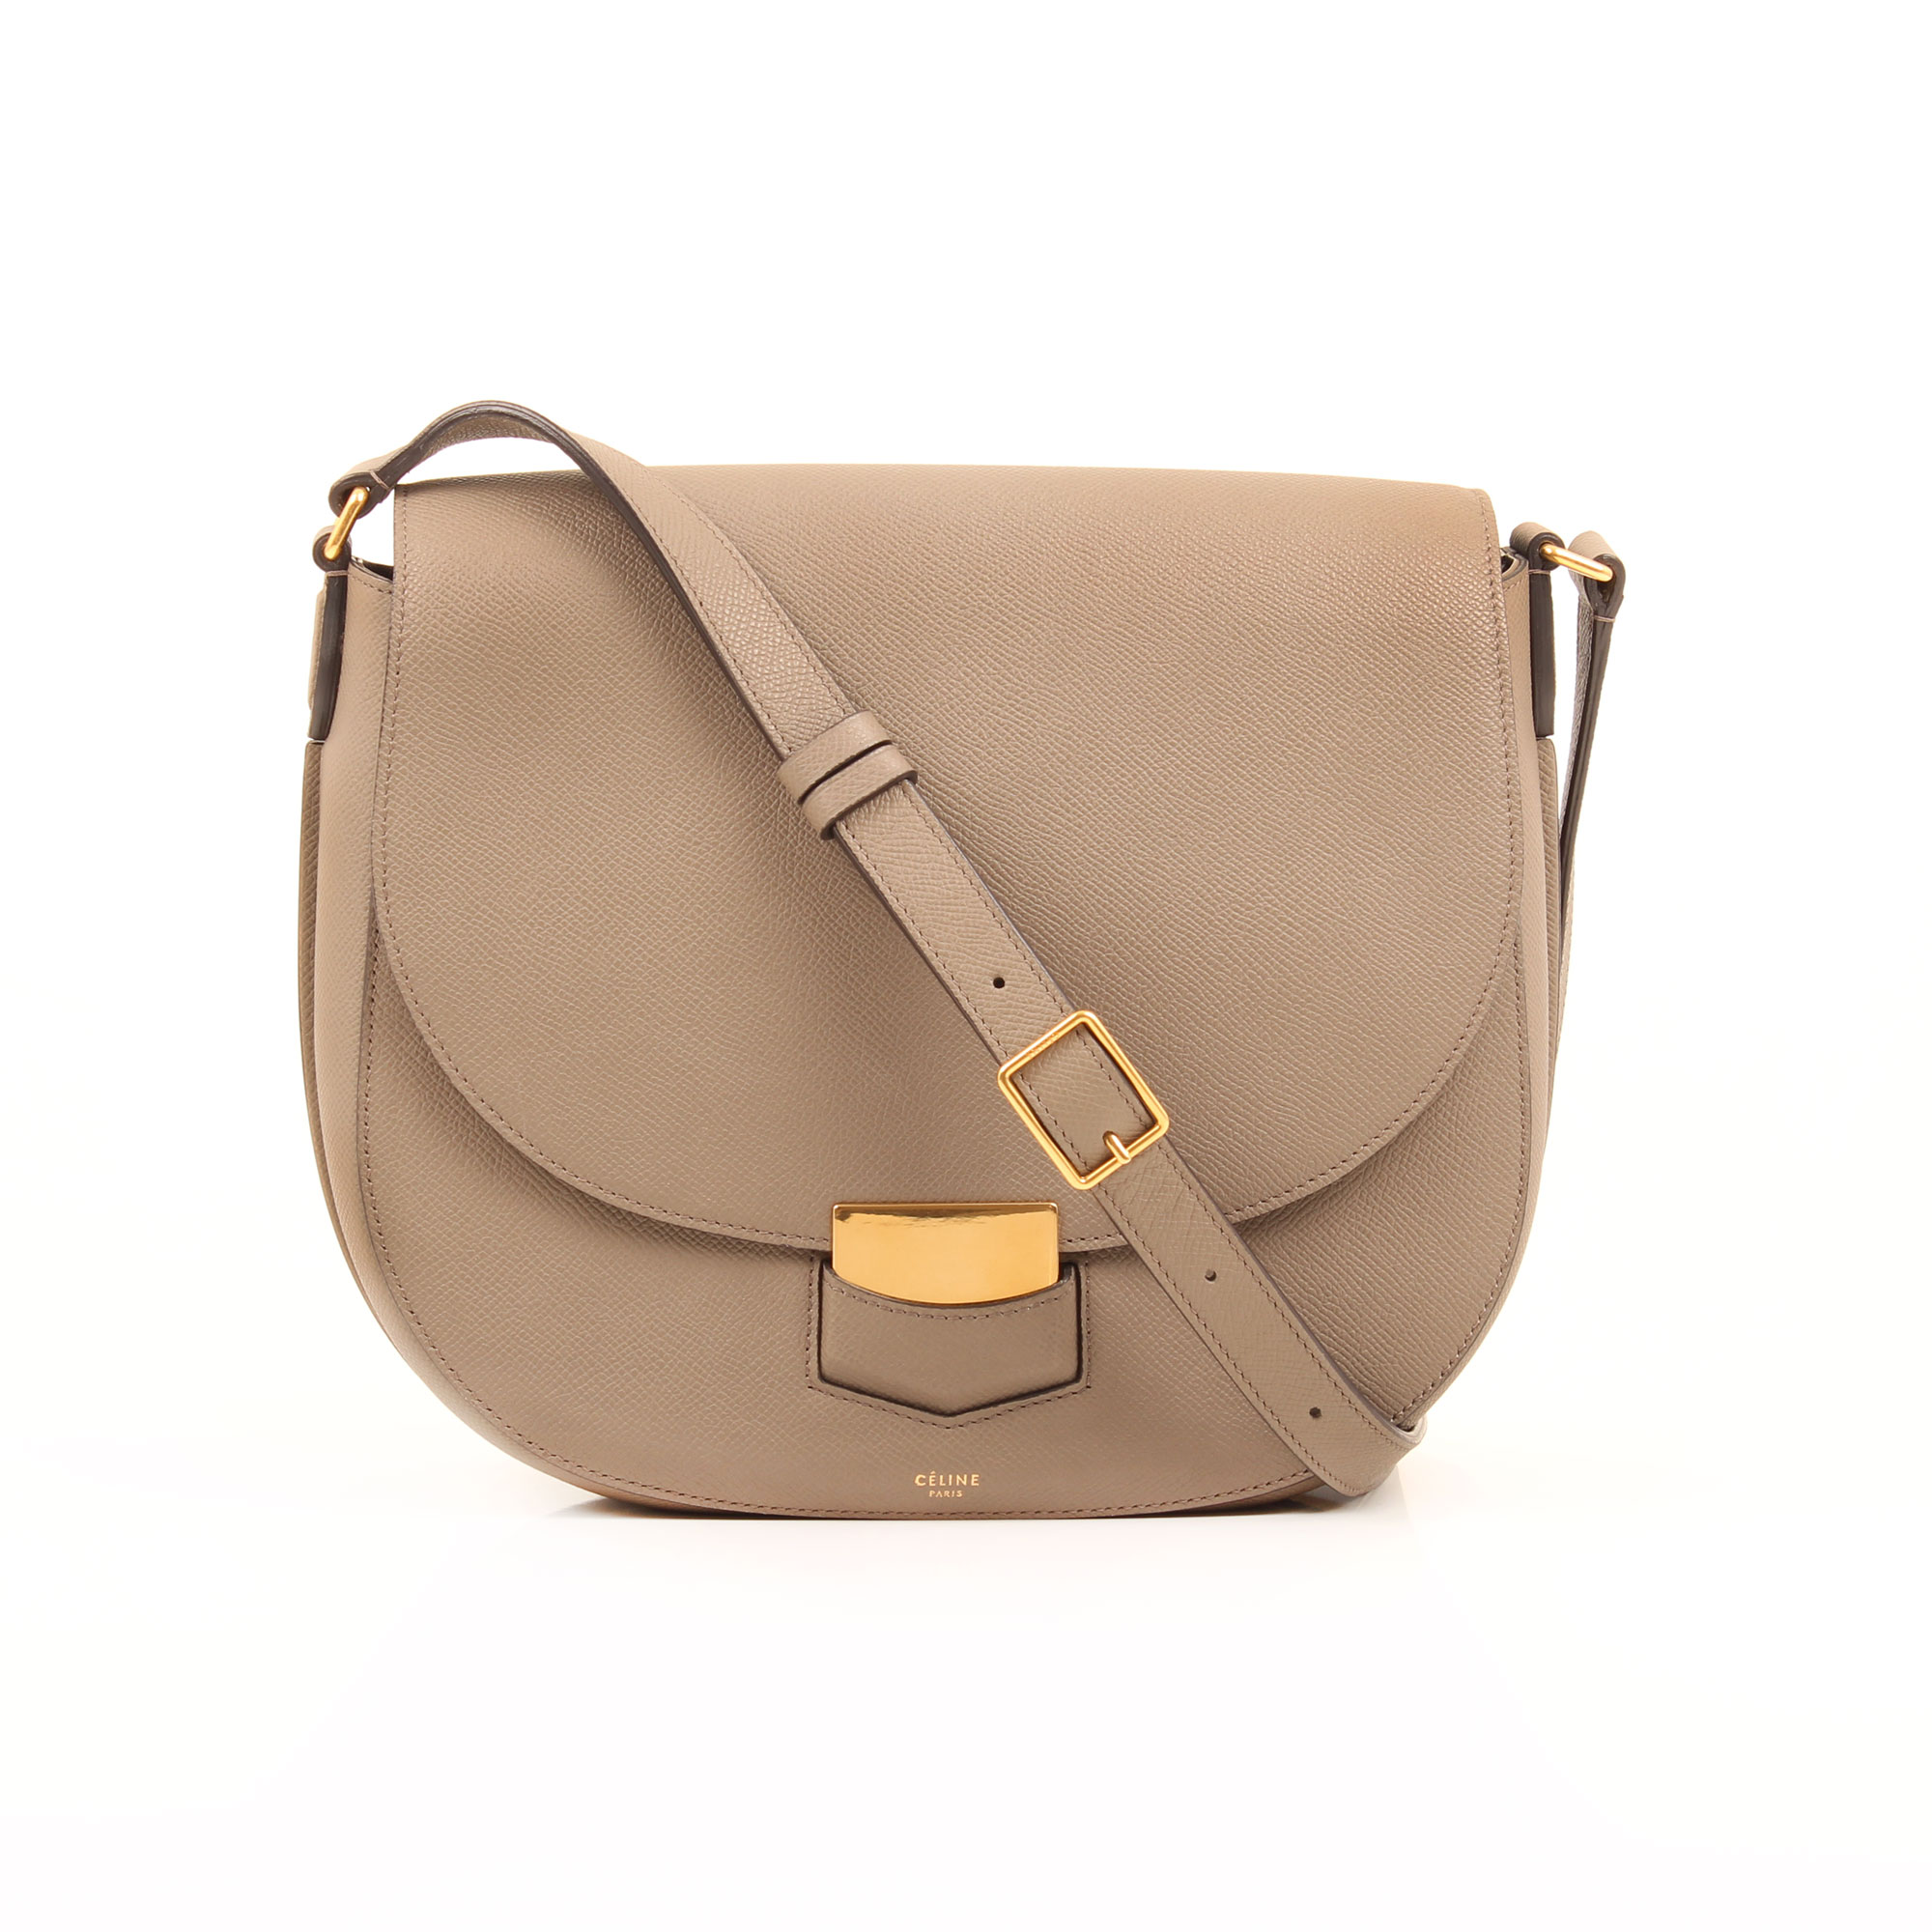 General image 1 of celine trotteur crossbody bag grey grain leather